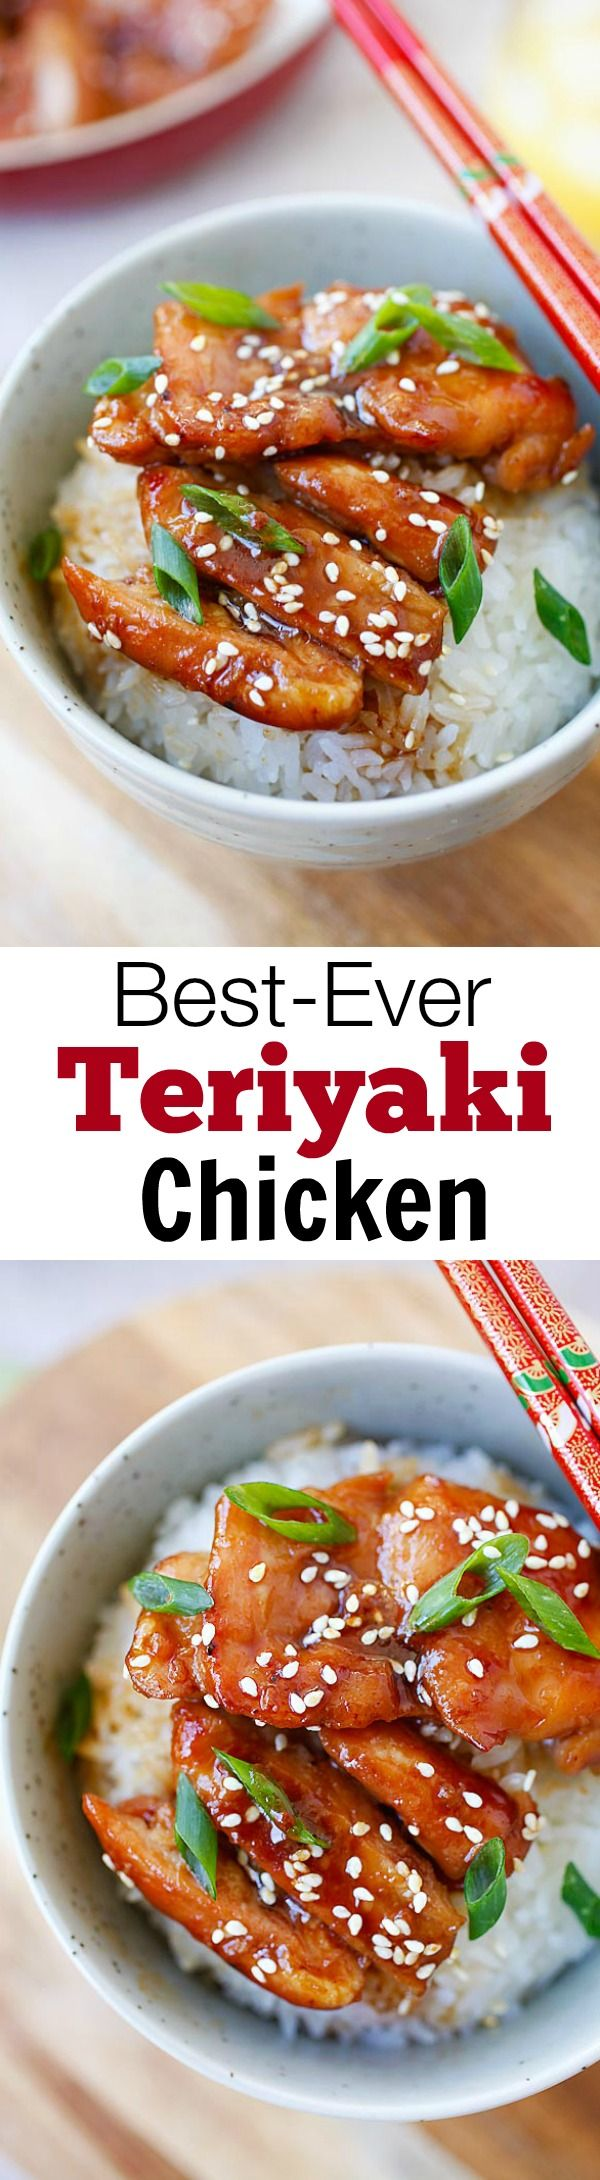 Teriyaki chicken – the most popular Japanese chicken dish. Learn how to make teriyaki chicken with this easy 30-min recipe with only four ingredients | rasamalaysia.com